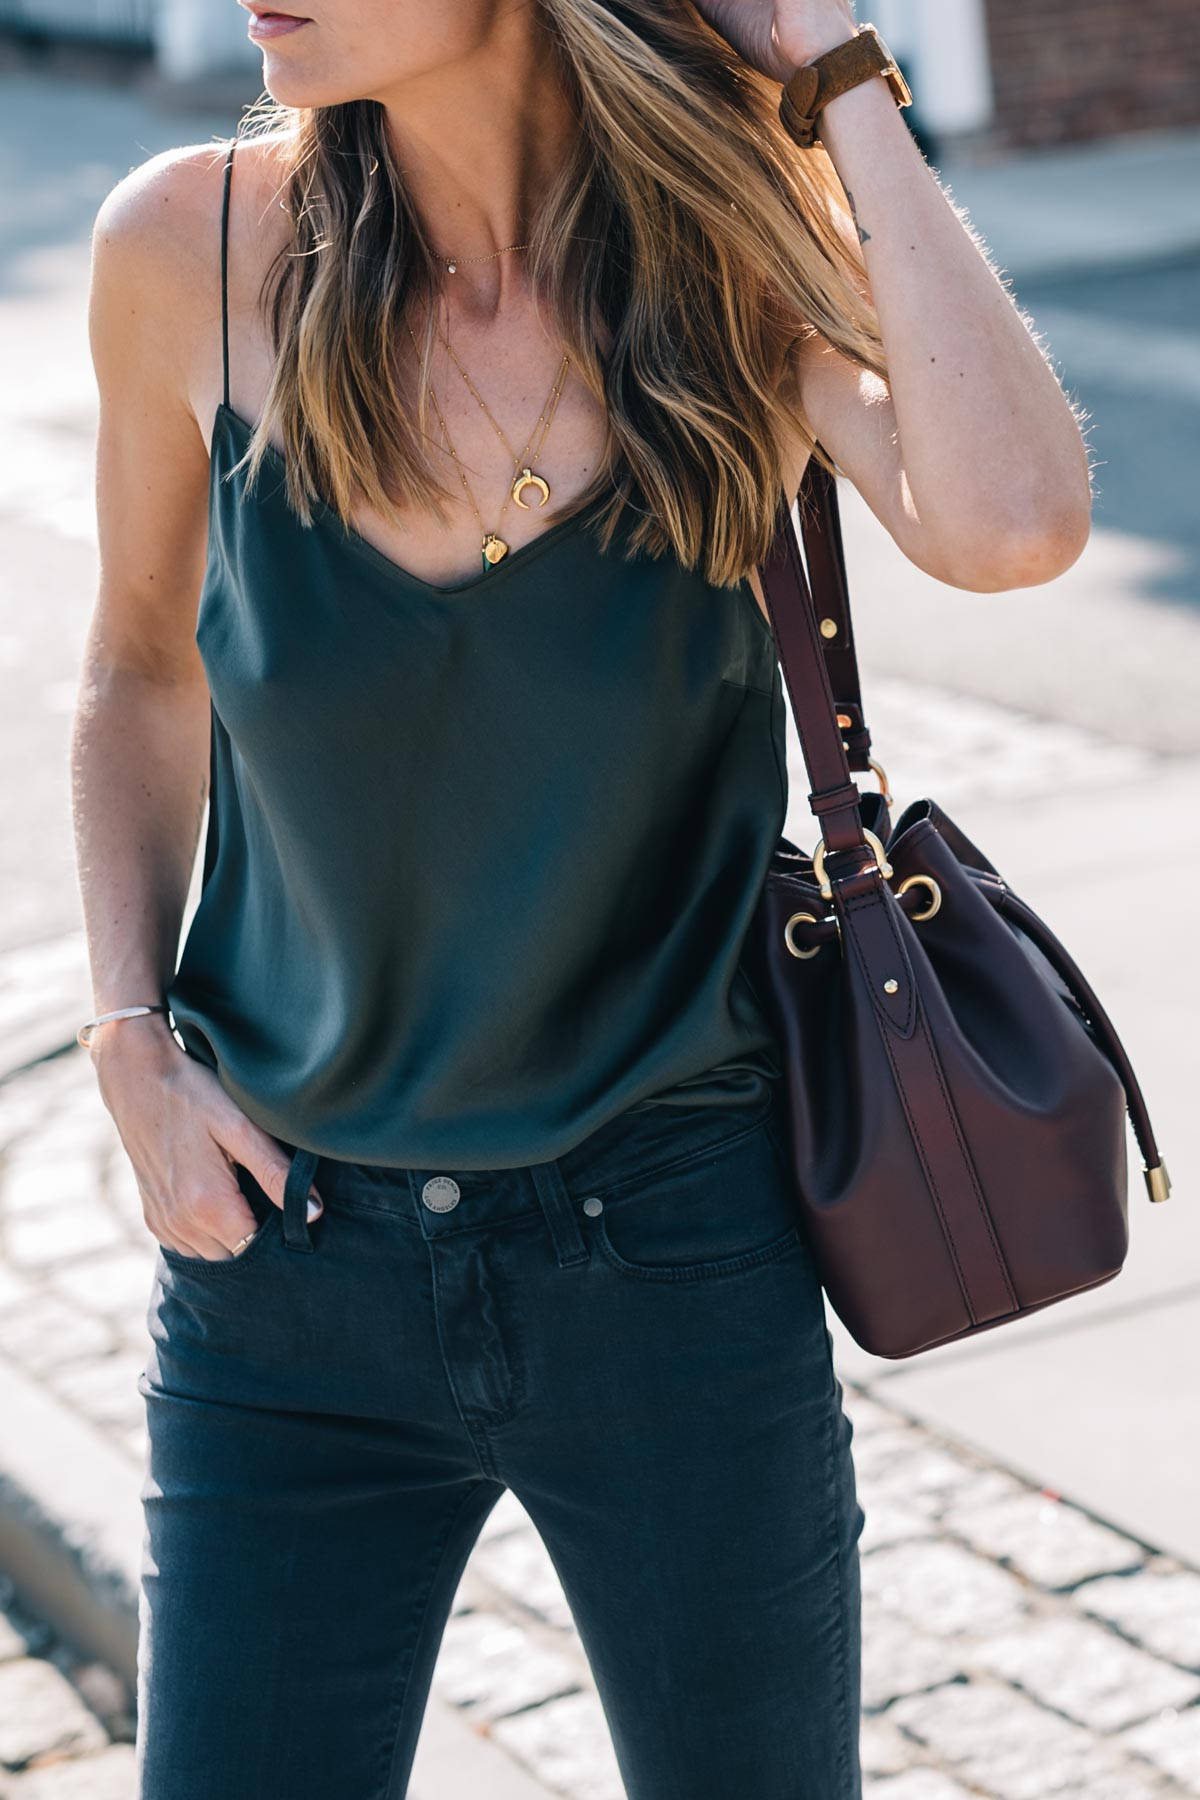 Transitional summer to fall style by Jess Ann Kirby wearing a Paige tank and Brahmin crossbody bag